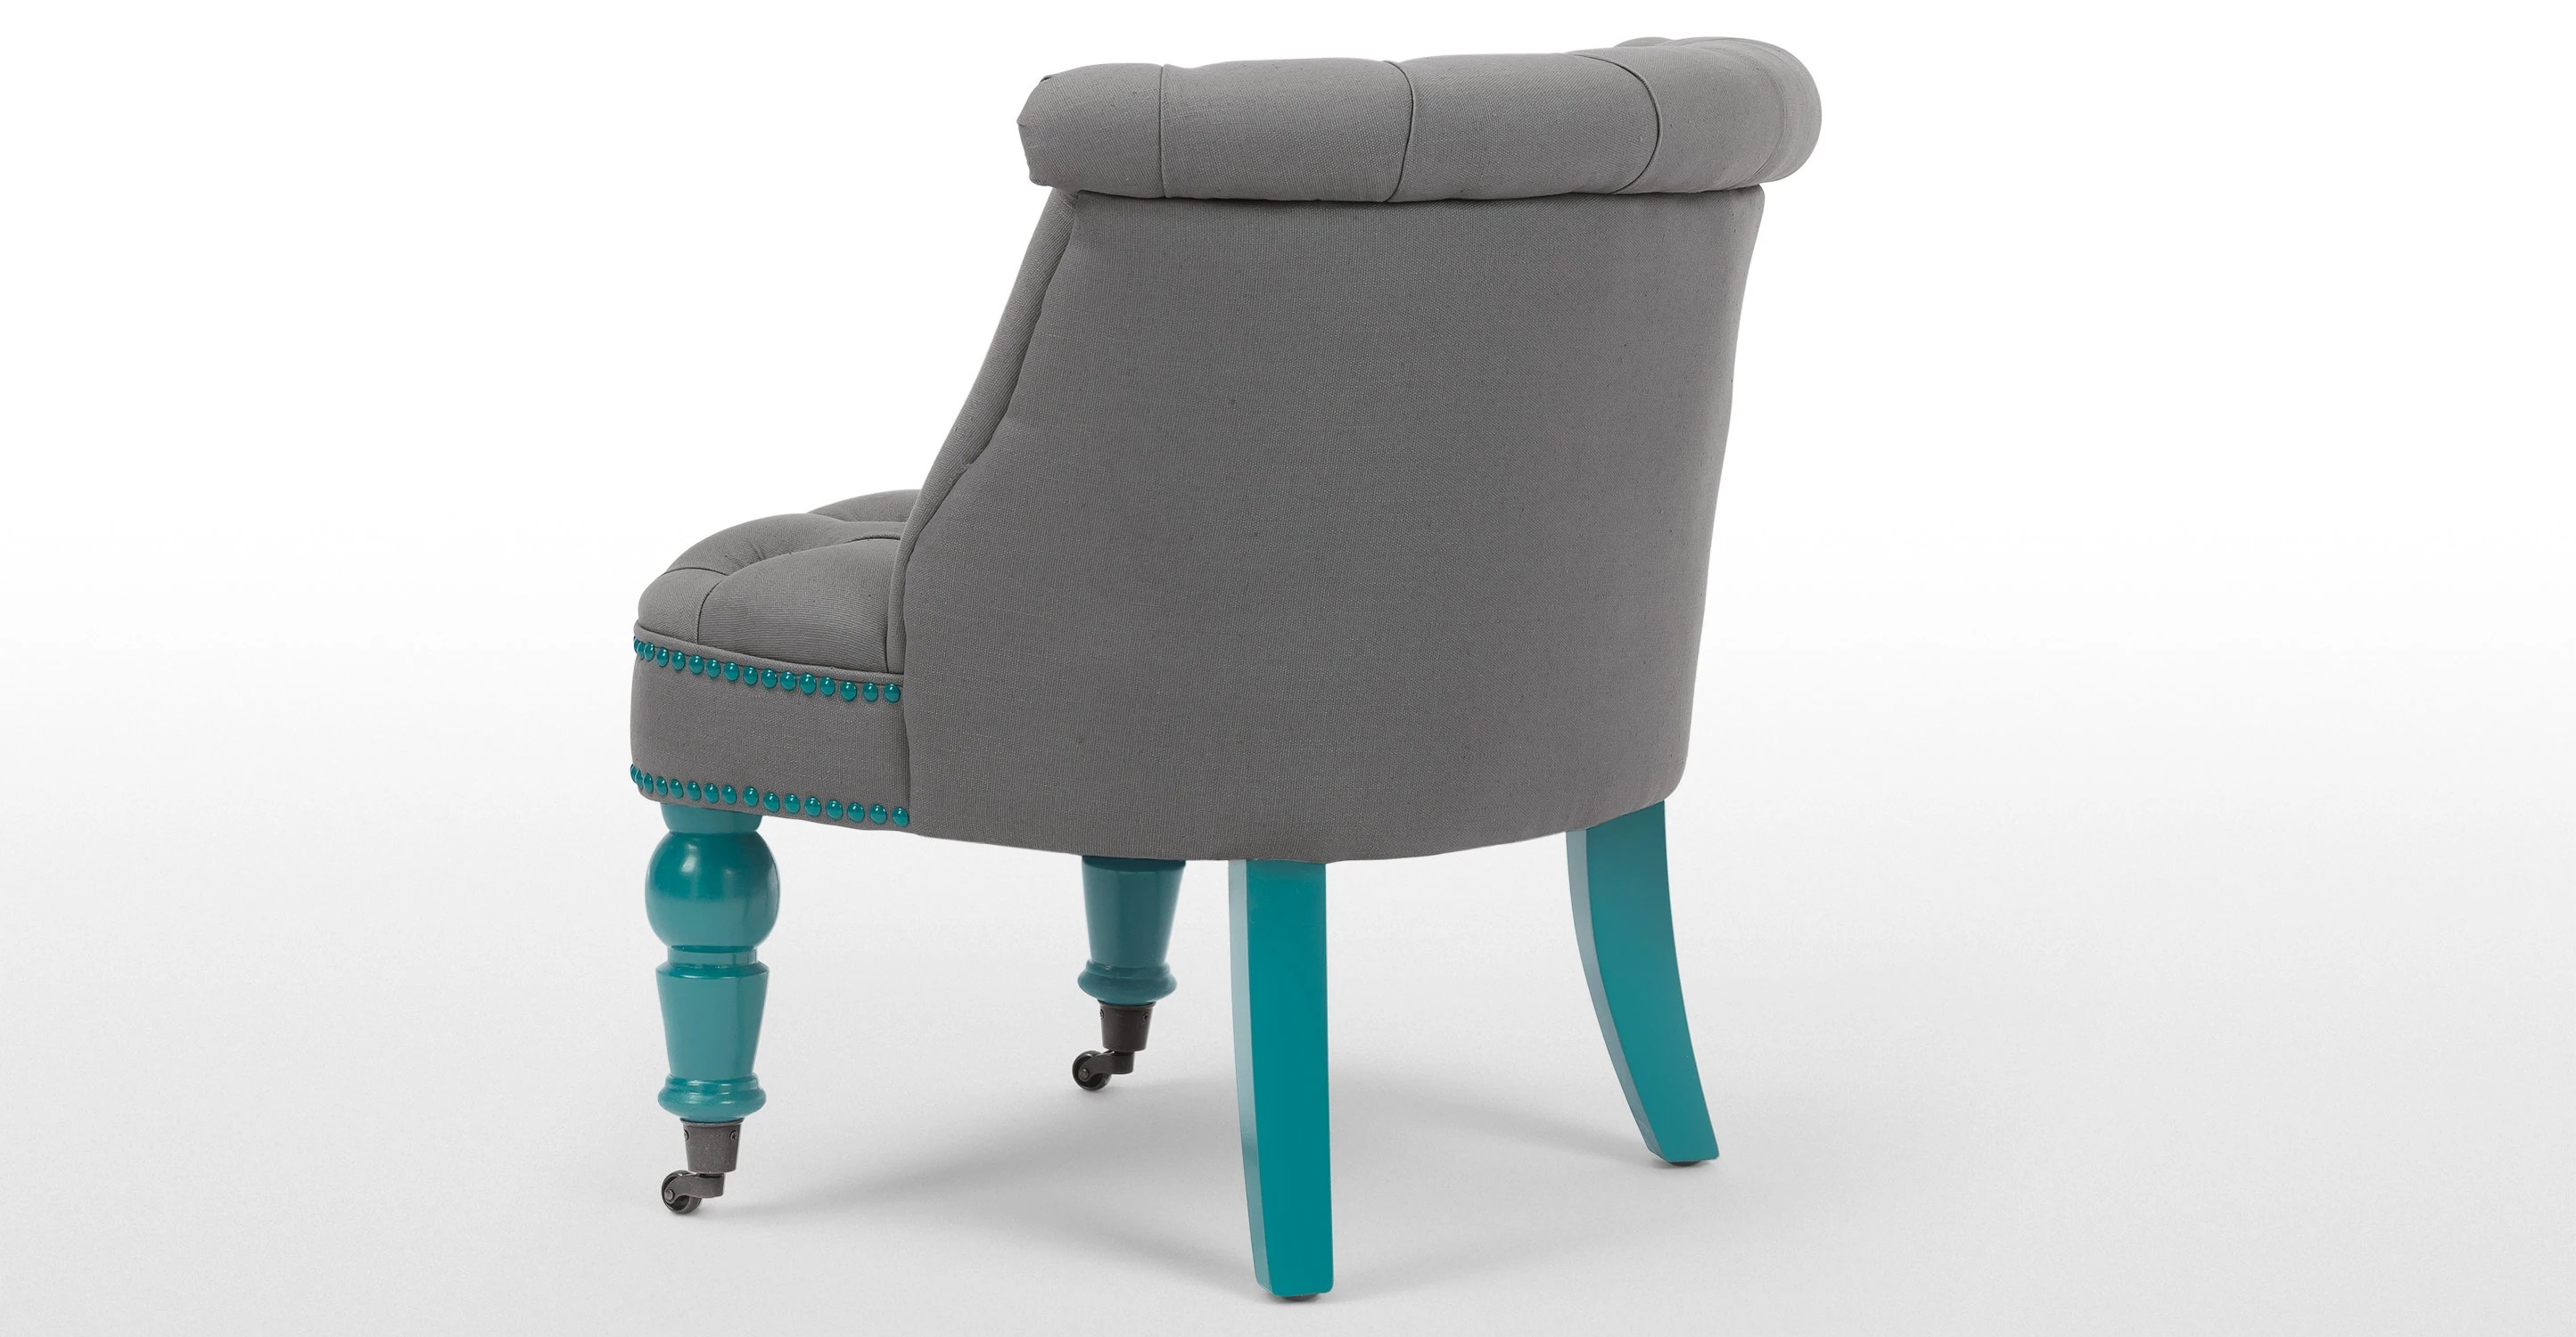 turquoise accent chairs backpack beach chair target an occasional in graphite grey and blue